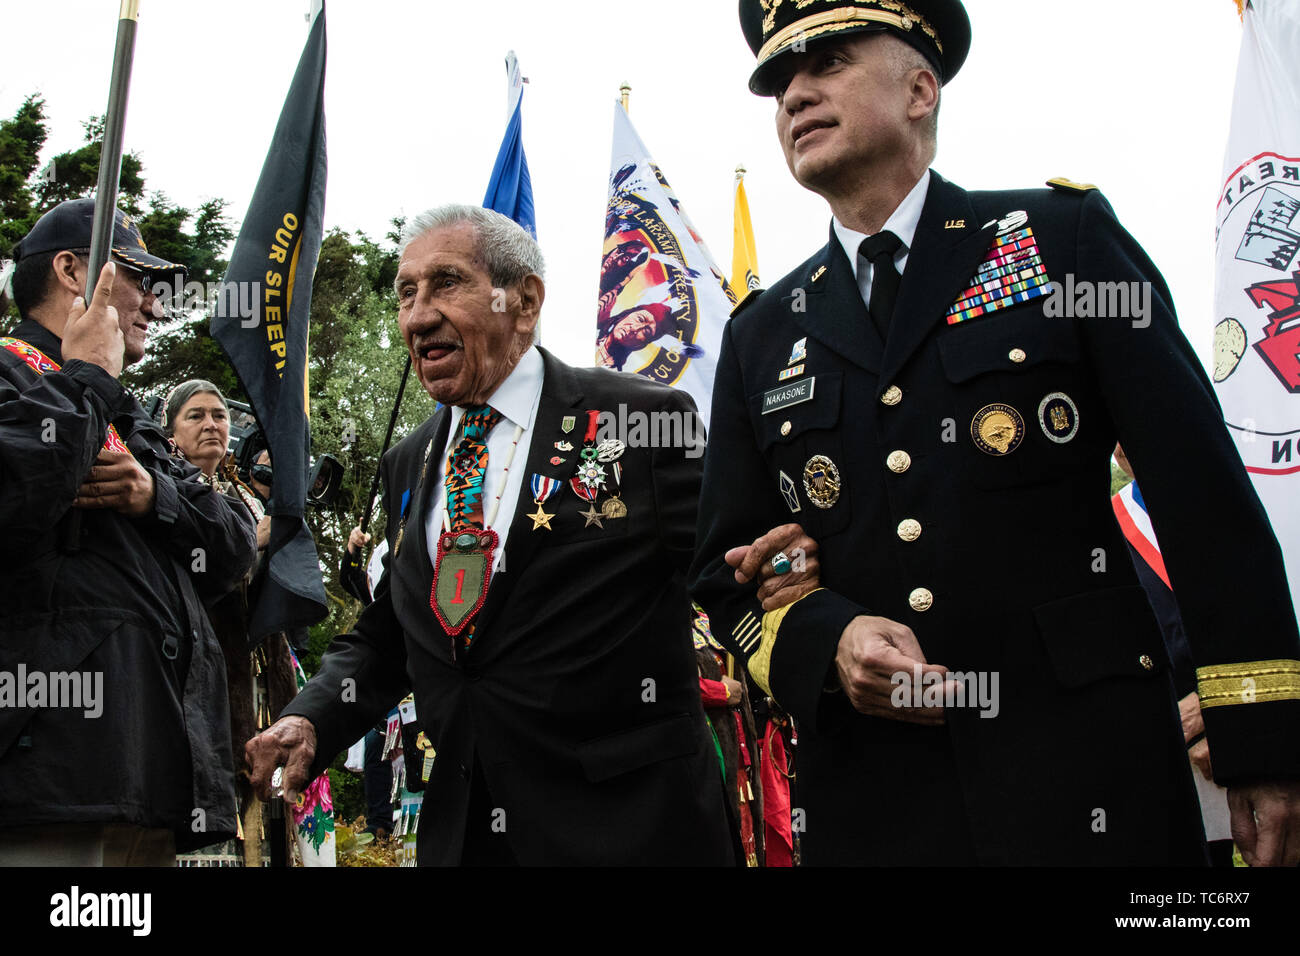 Pointe Du Hoc, France. 05th June, 2019. U.S. Gen. Paul M. Nakasone, commander of Cyber Command, right, escorts Native American WWII veteran Charles Shay to the Charles Shay memorial ceremony at Omaha Beach on the anniversary of the D-Day invasion June 5, 2019 in Pointe du Hoc, Normandy, France. Thousands have converged on Normandy to commemorate the 75th anniversary of Operation Overlord, the WWII Allied invasion commonly known as D-Day. Credit: Planetpix/Alamy Live News Stock Photo